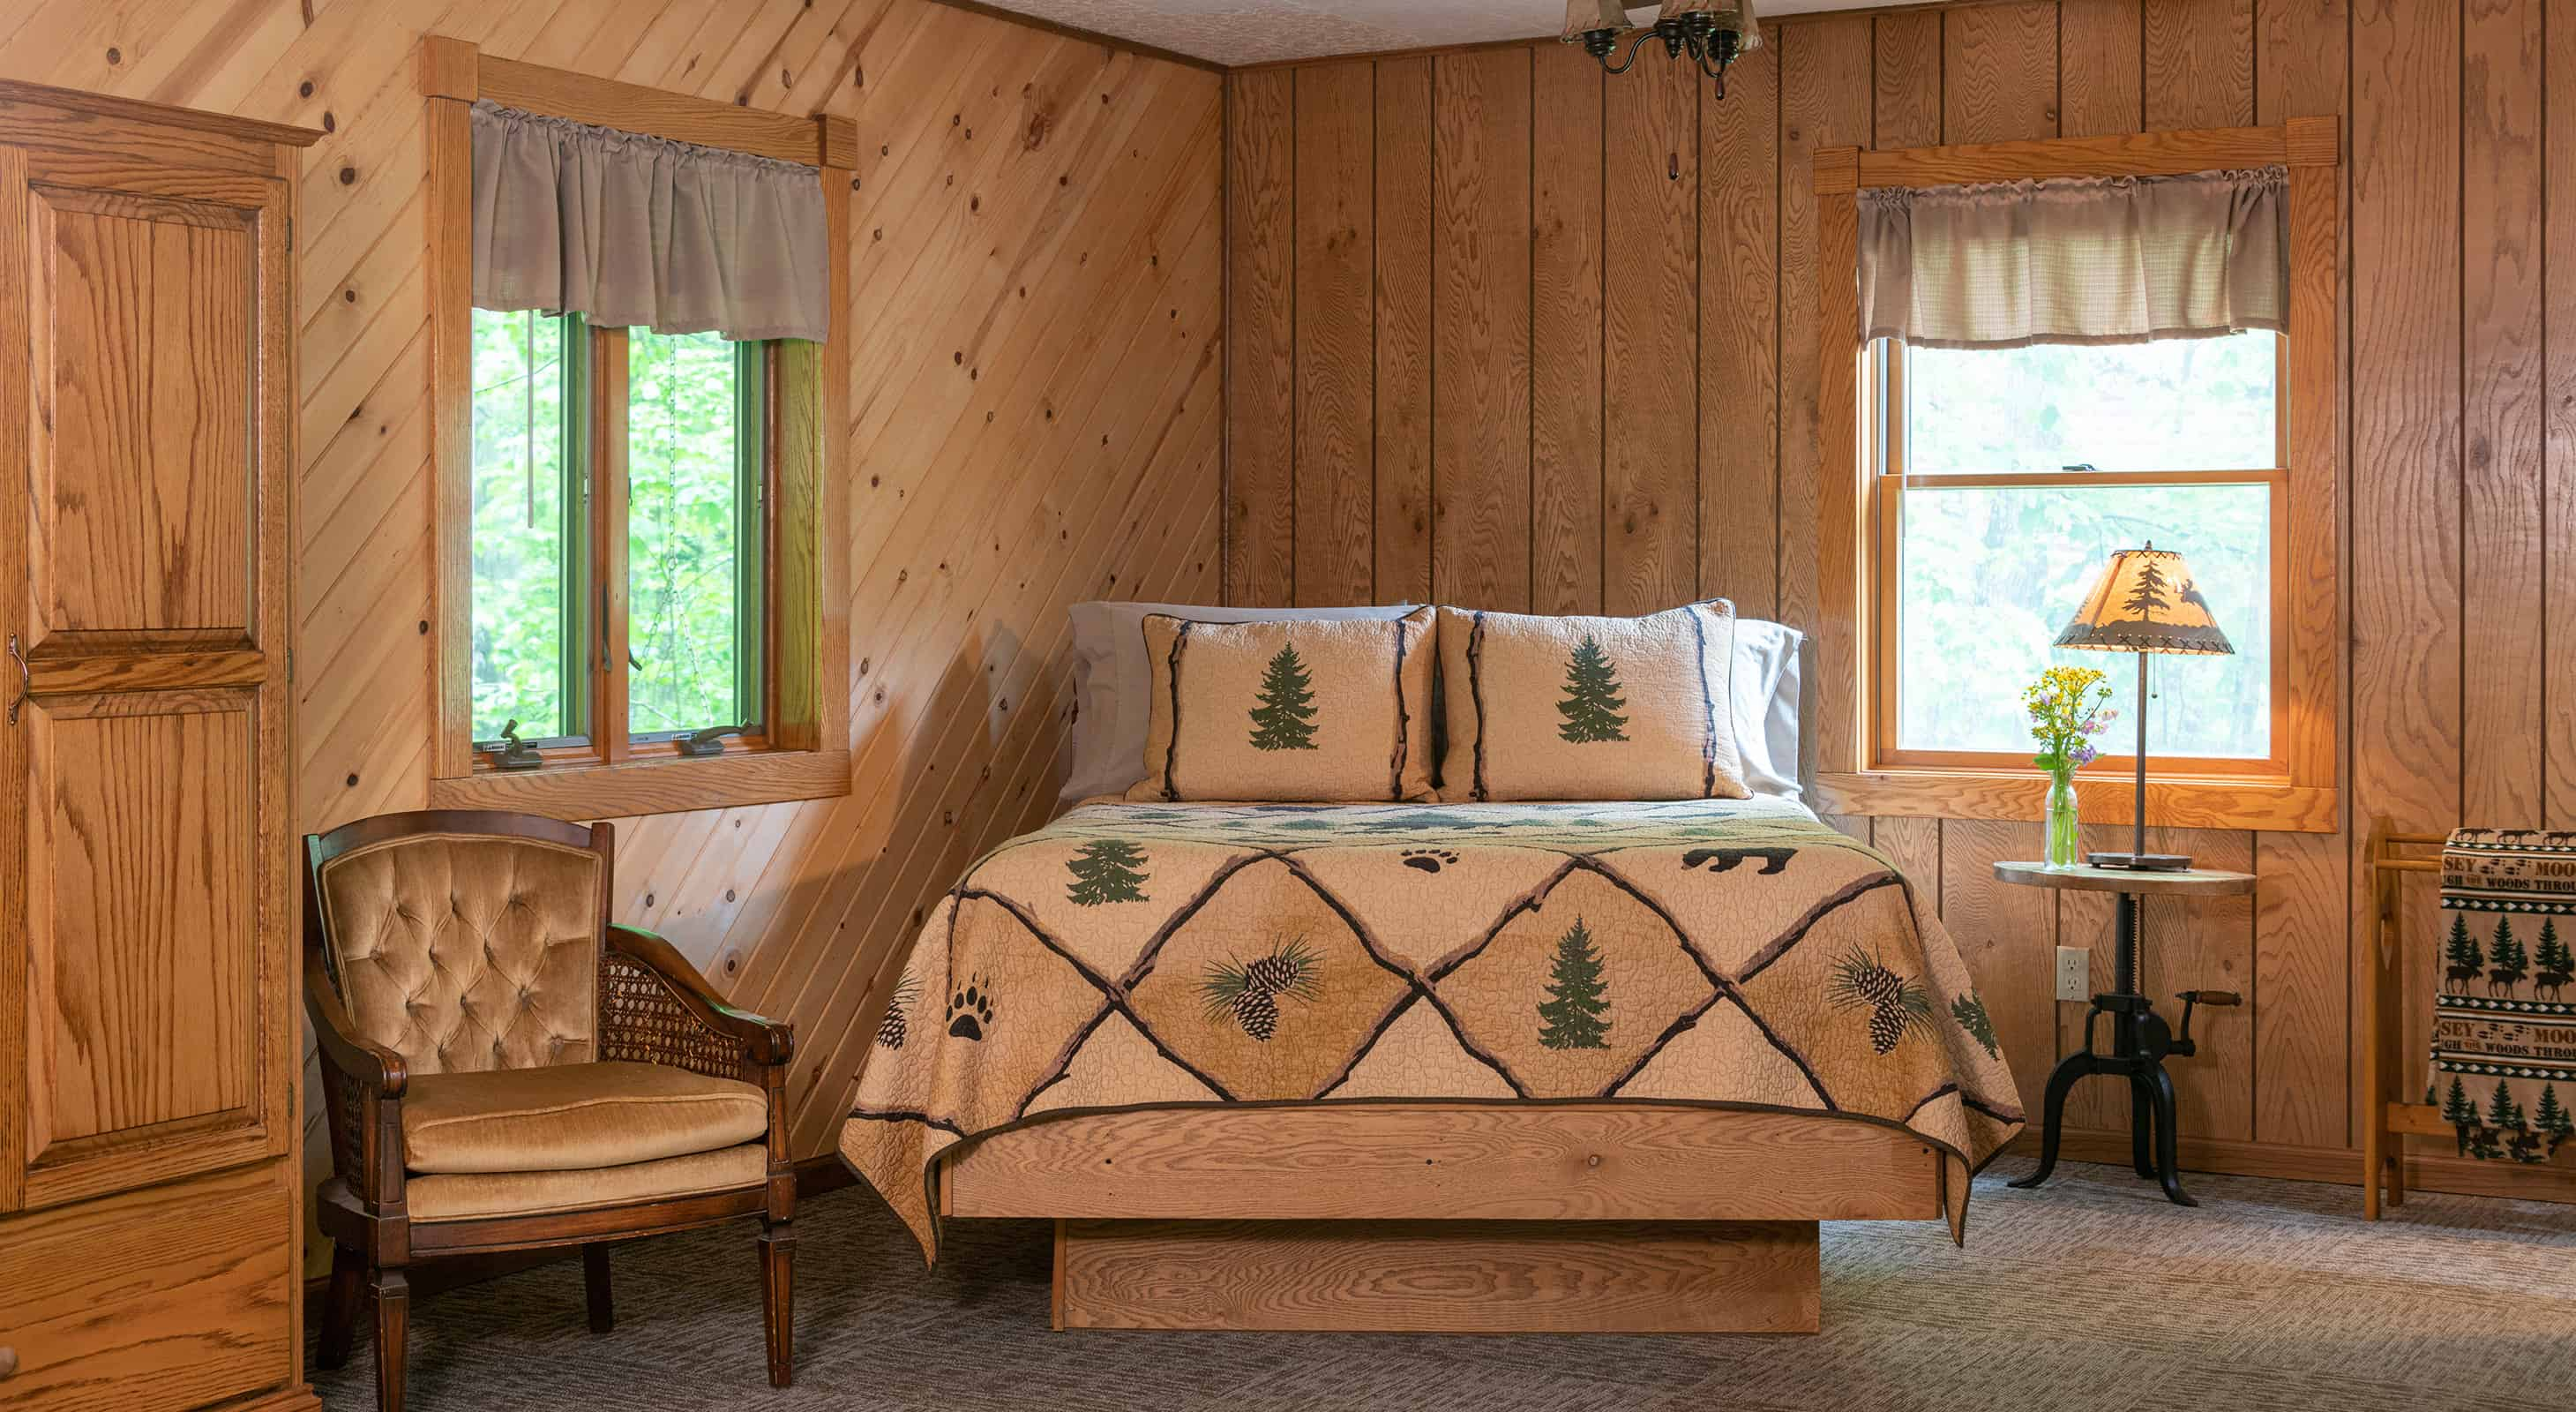 Chippewa Cabin bed for romantic Starved Rock, Illinois lodging